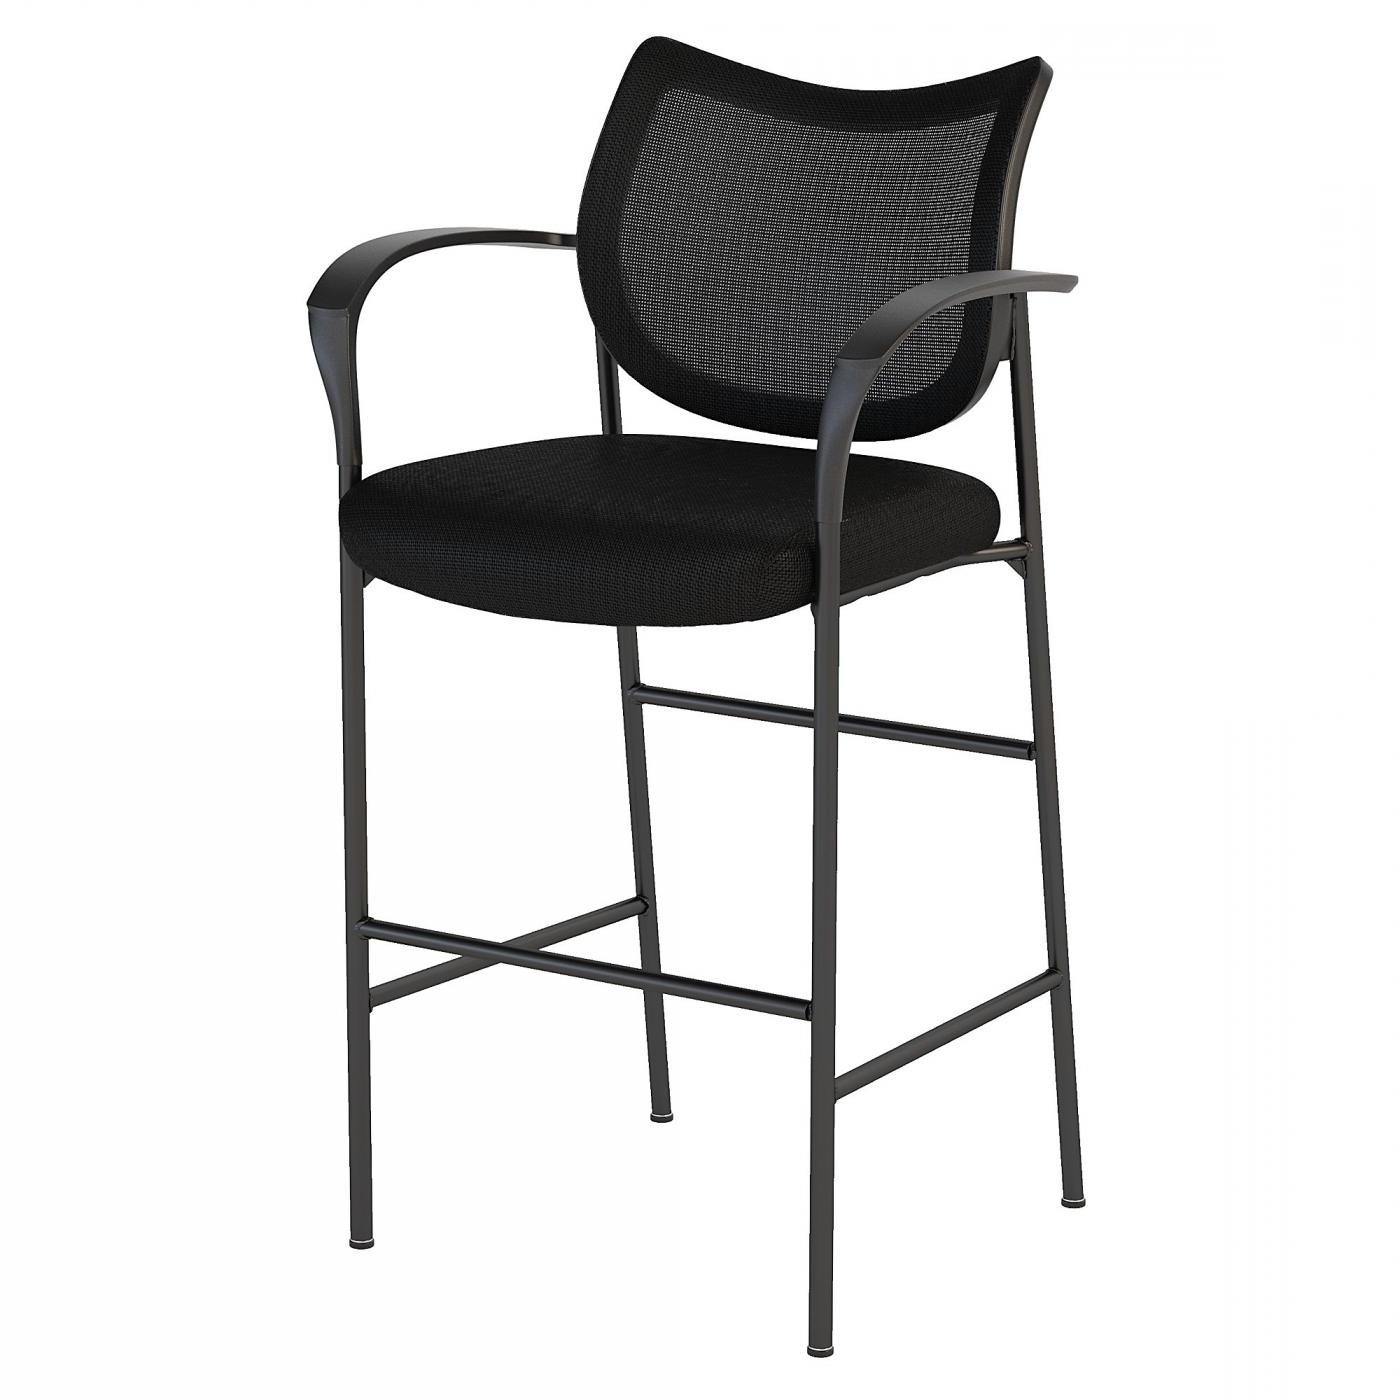 </b></font><b>BUSH BUSINESS FURNITURE CORPORATE MESH BACK STANDING DESK STOOL. FREE SHIPPING</font>. </b></font></b>